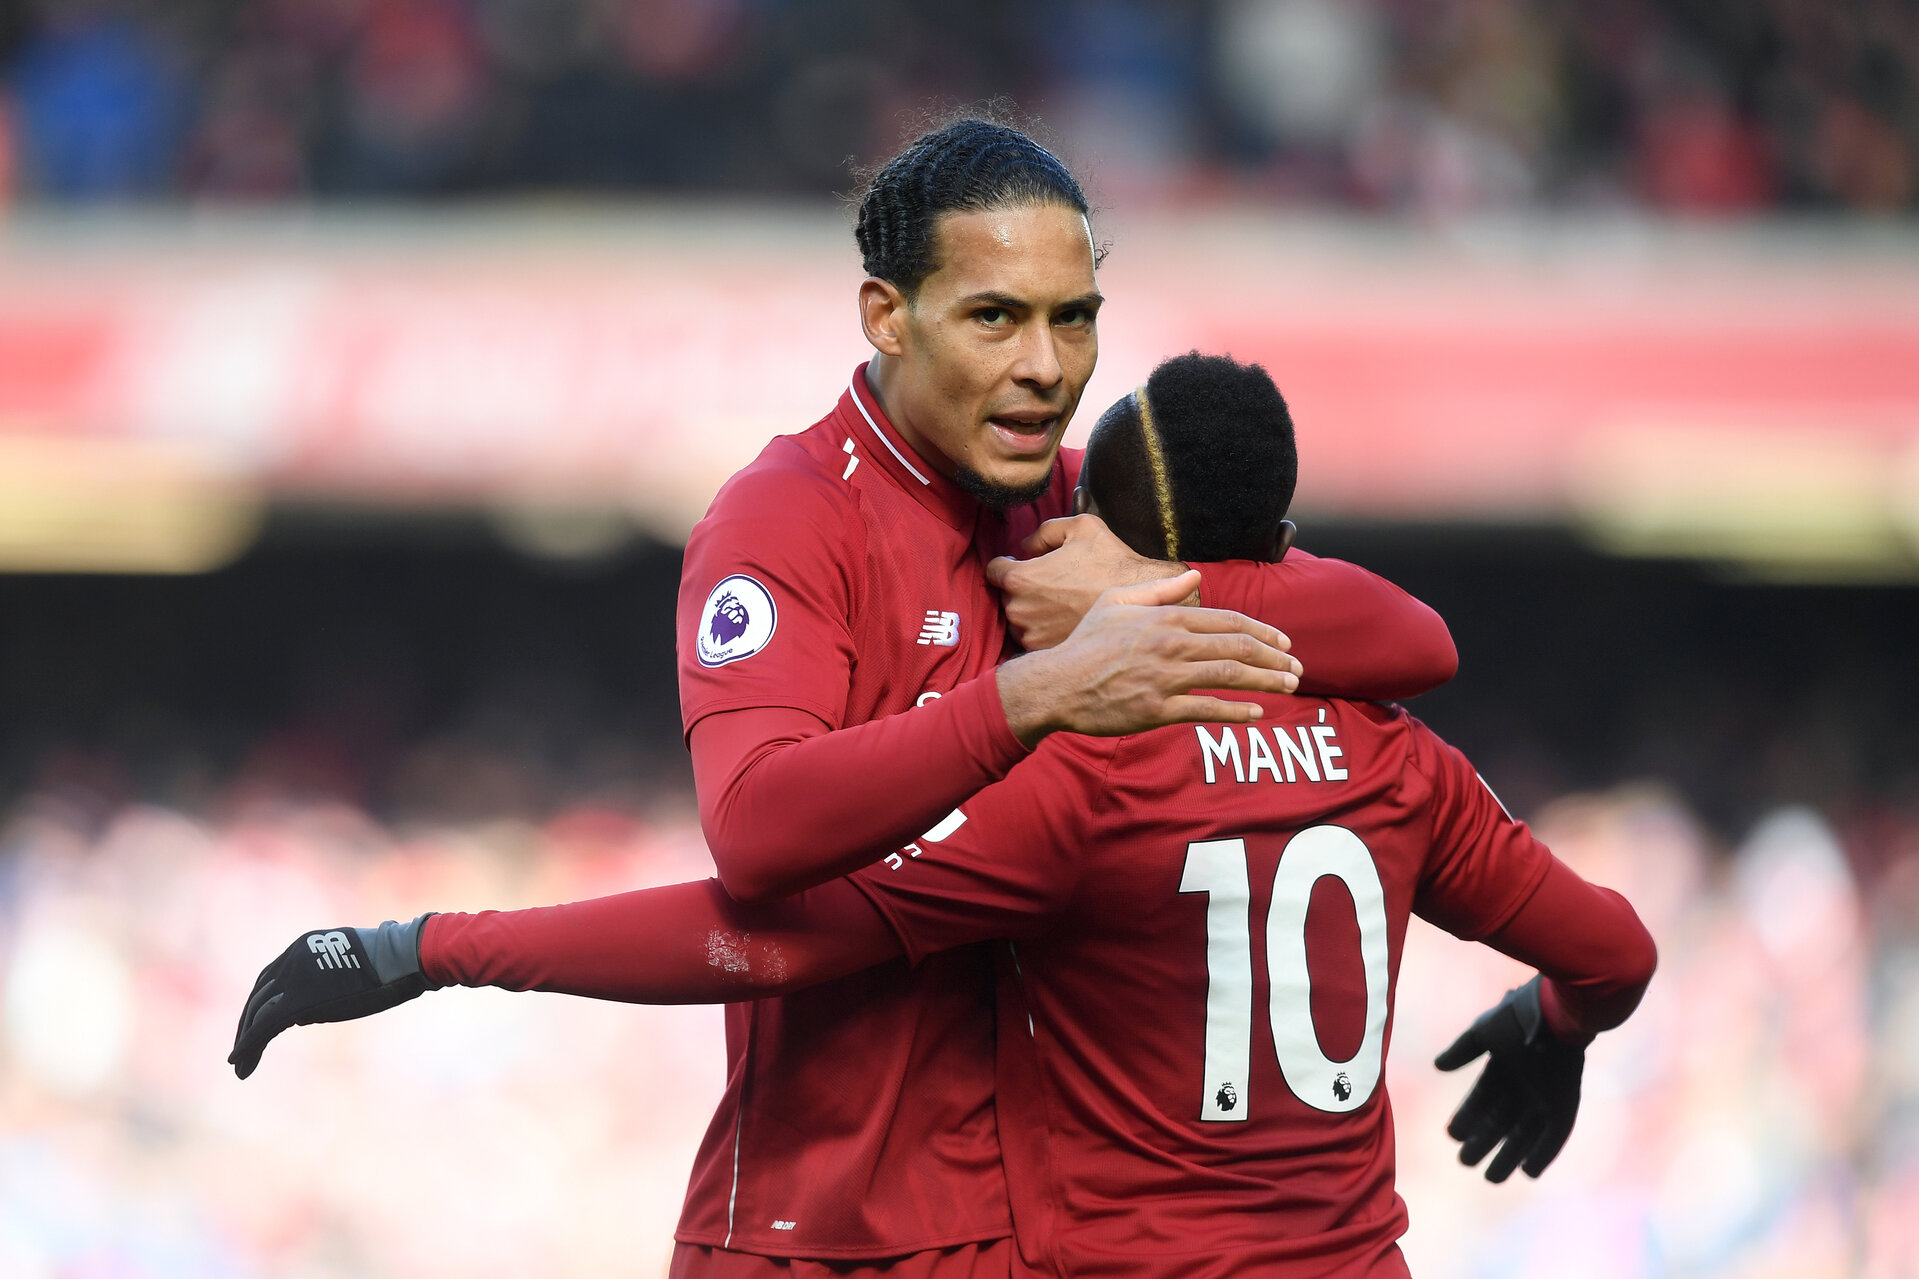 LIVERPOOL, ENGLAND - MARCH 10: Sadio Mane of Liverpool celebrates with Virgil van Dijk of Liverpool after scoring his sides fourth goal during the Premier League match between Liverpool FC and Burnley FC at Anfield on March 10, 2019 in Liverpool, United Kingdom. (Photo by Michael Regan/Getty Images)